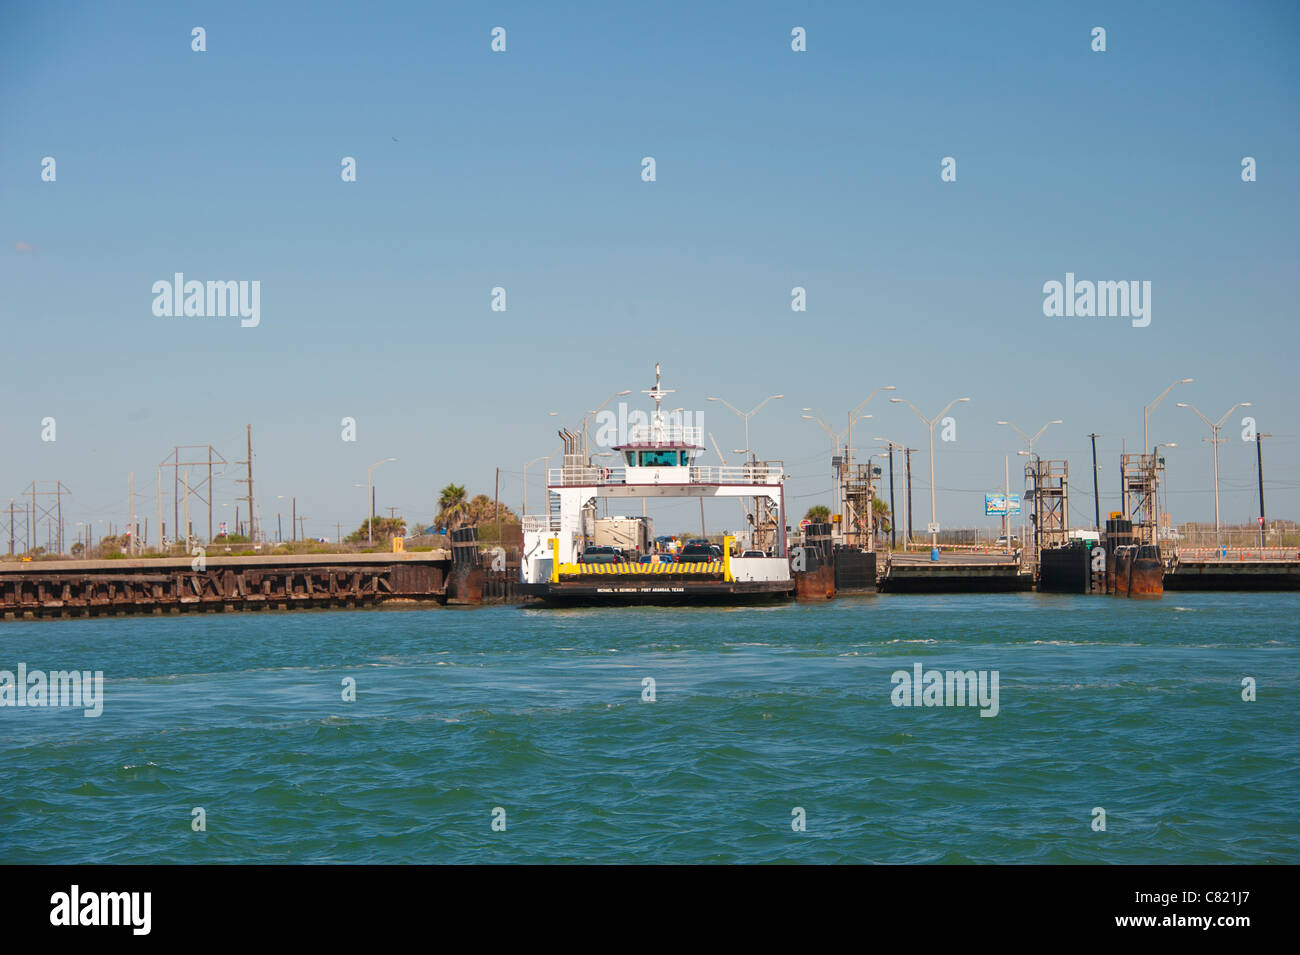 Ferry Dock at the Gulf of Mexico - Stock Image